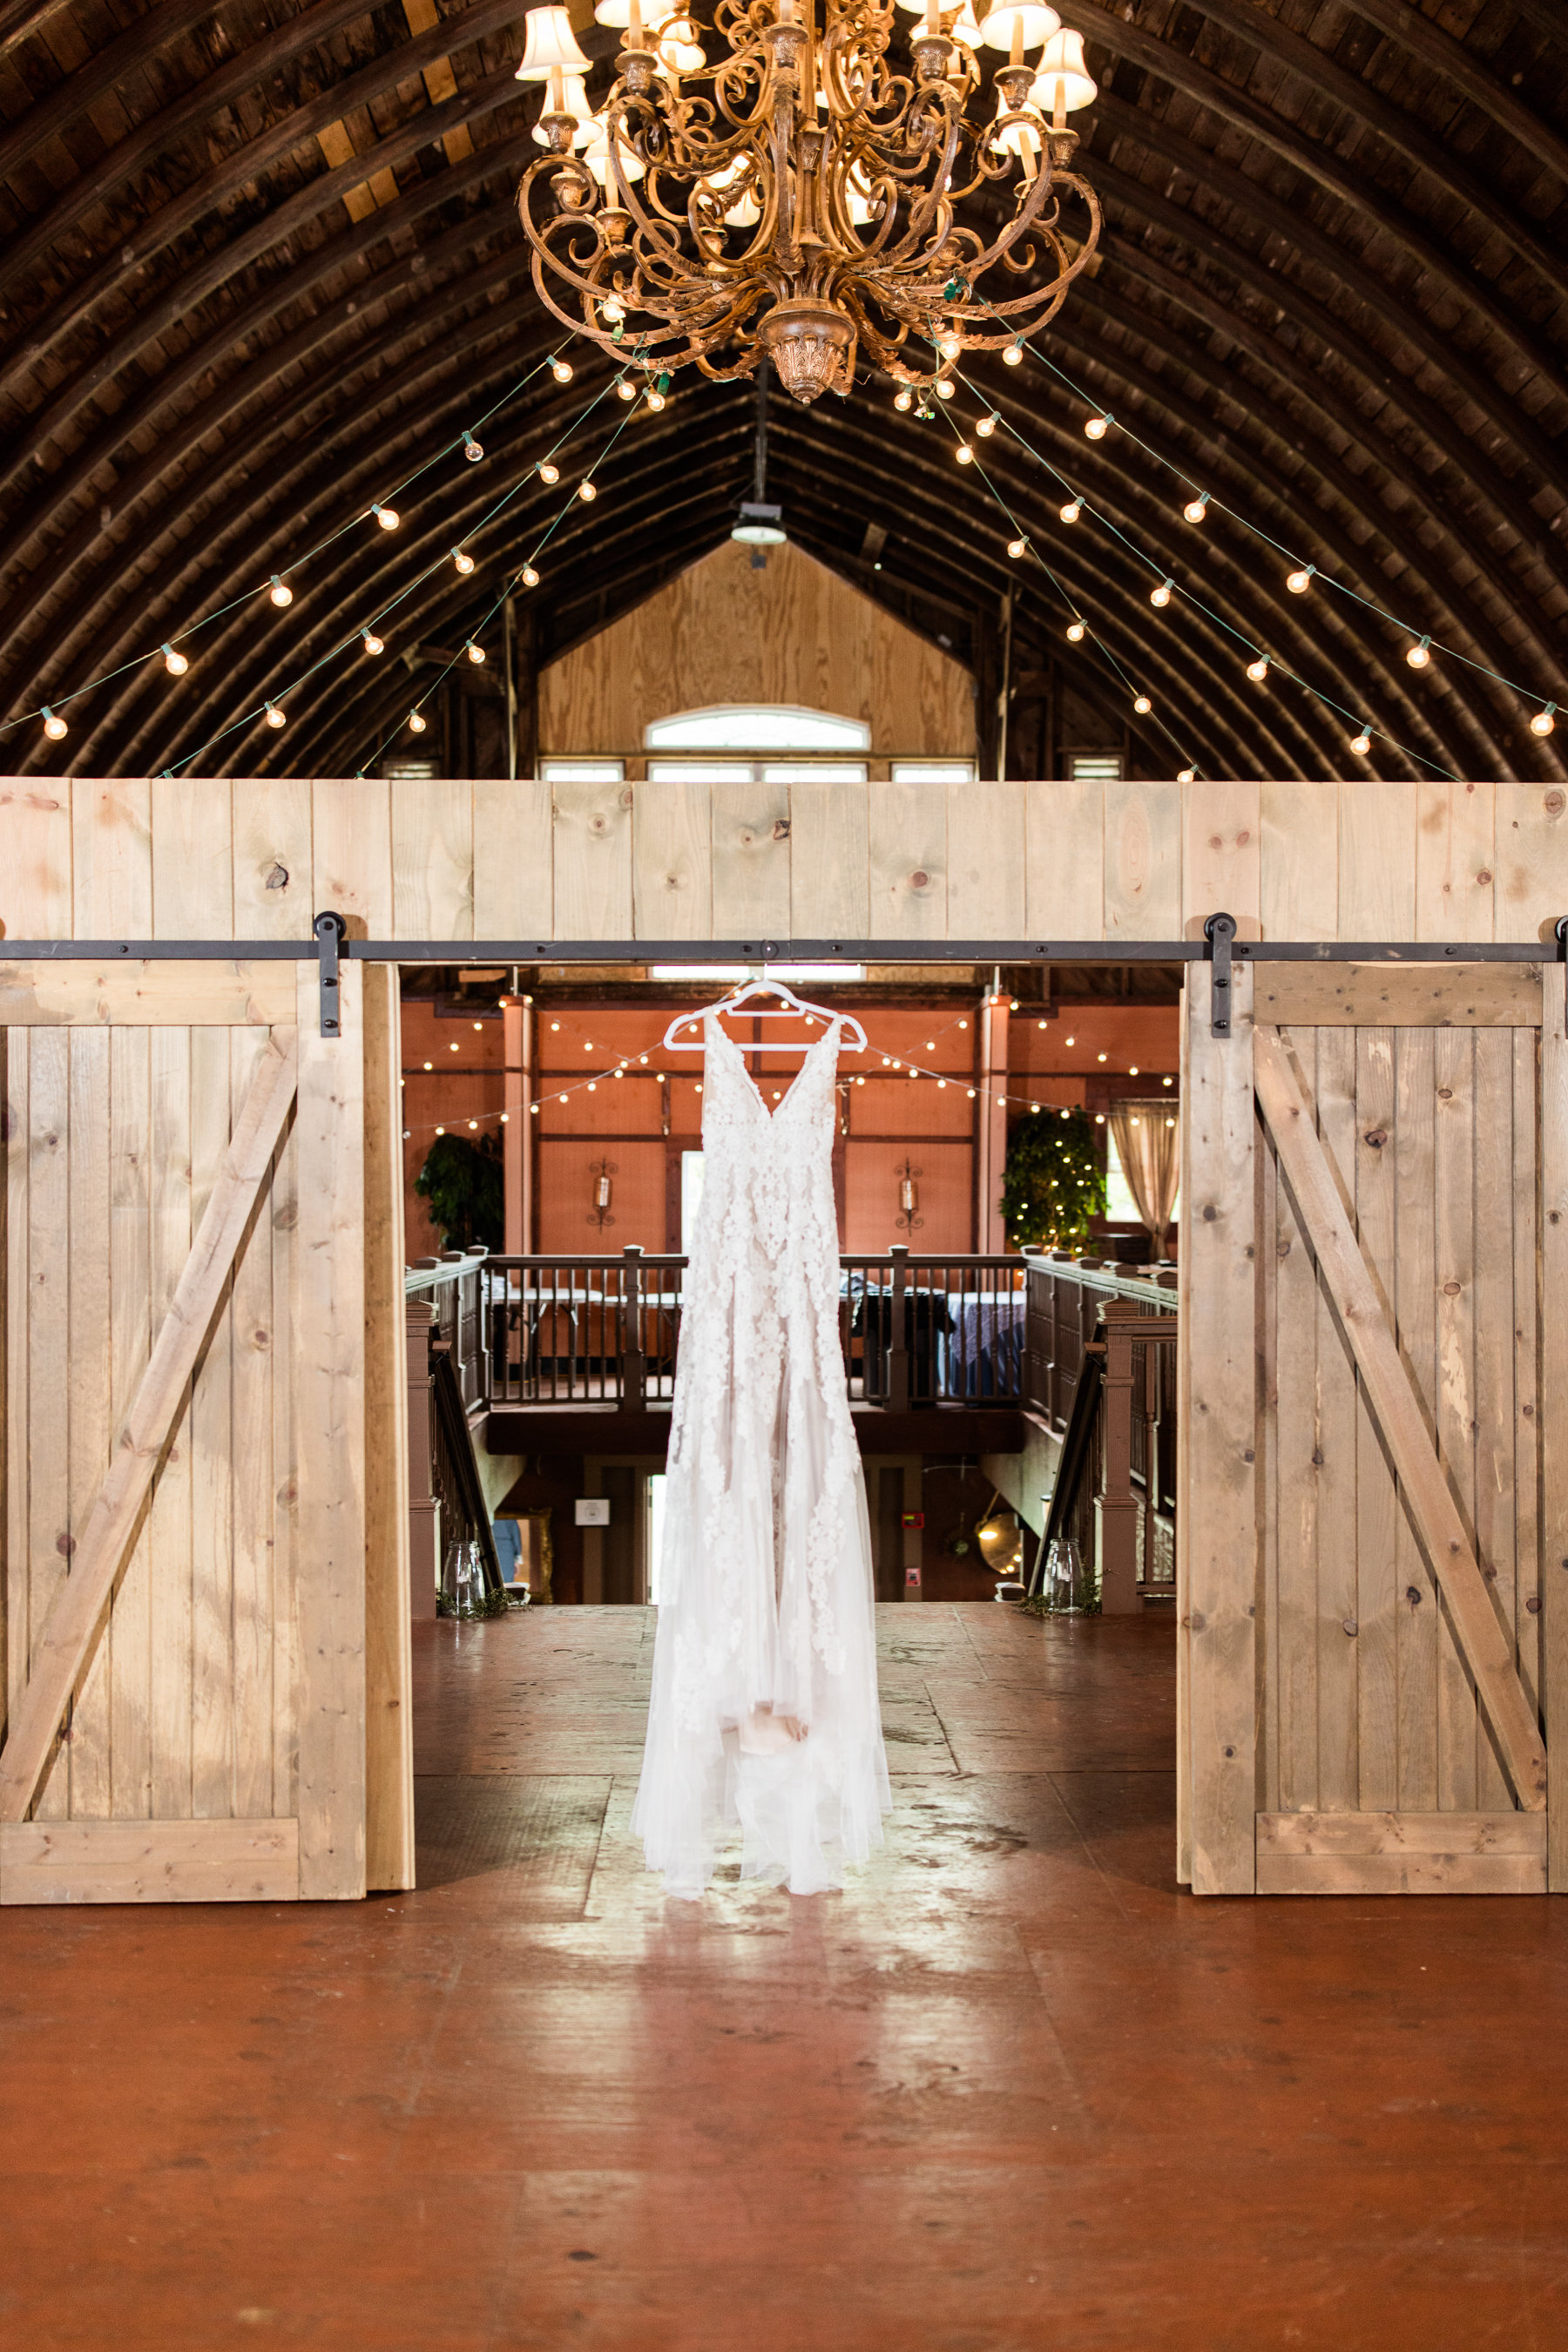 Brandy Hill Farm Virginia Wedding - The Overwhelmed Bride Wedding Inspiration Ideas Blog